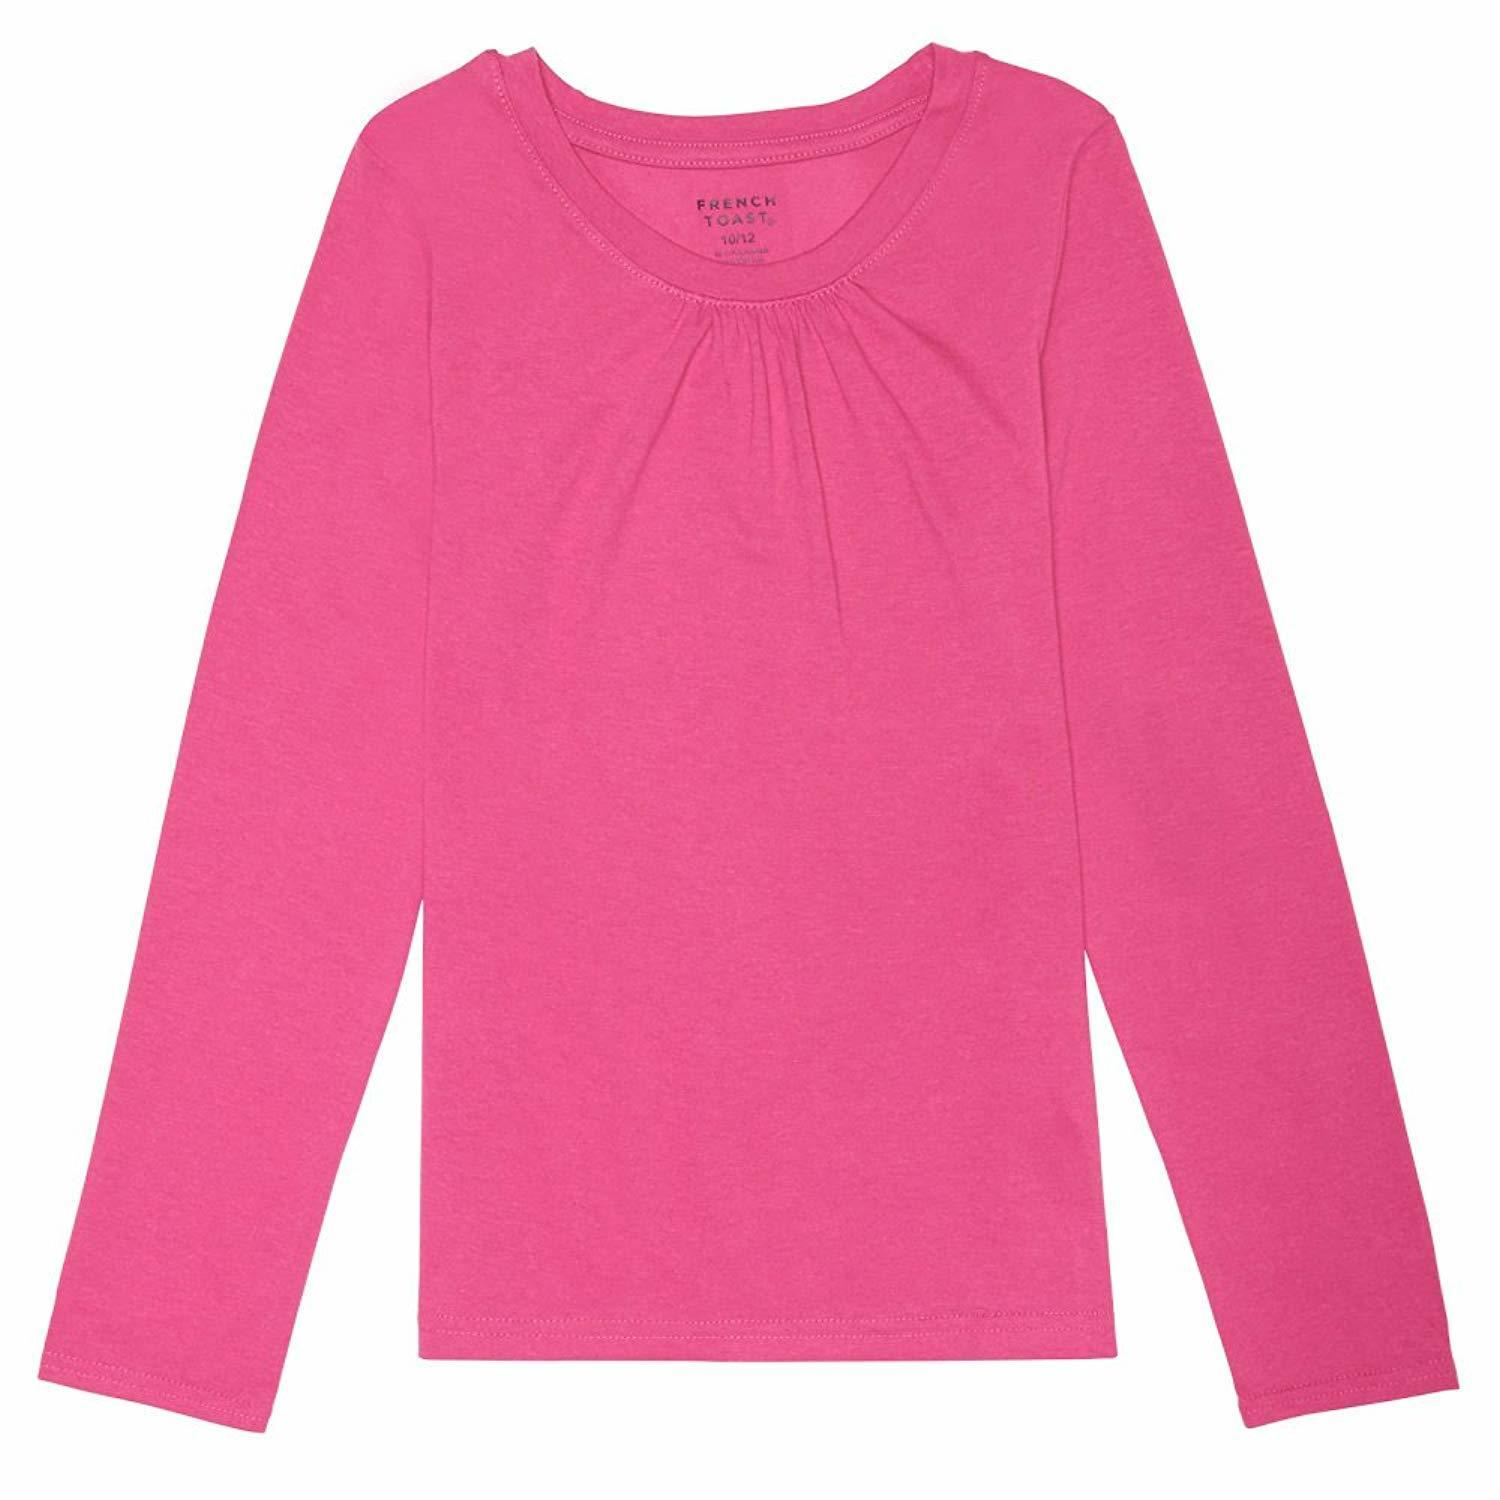 06b2e87d69f fit to viewer. prev next. French+Toast French Toast Baby Girls Long Sleeve  Crew Neck T-Shirt